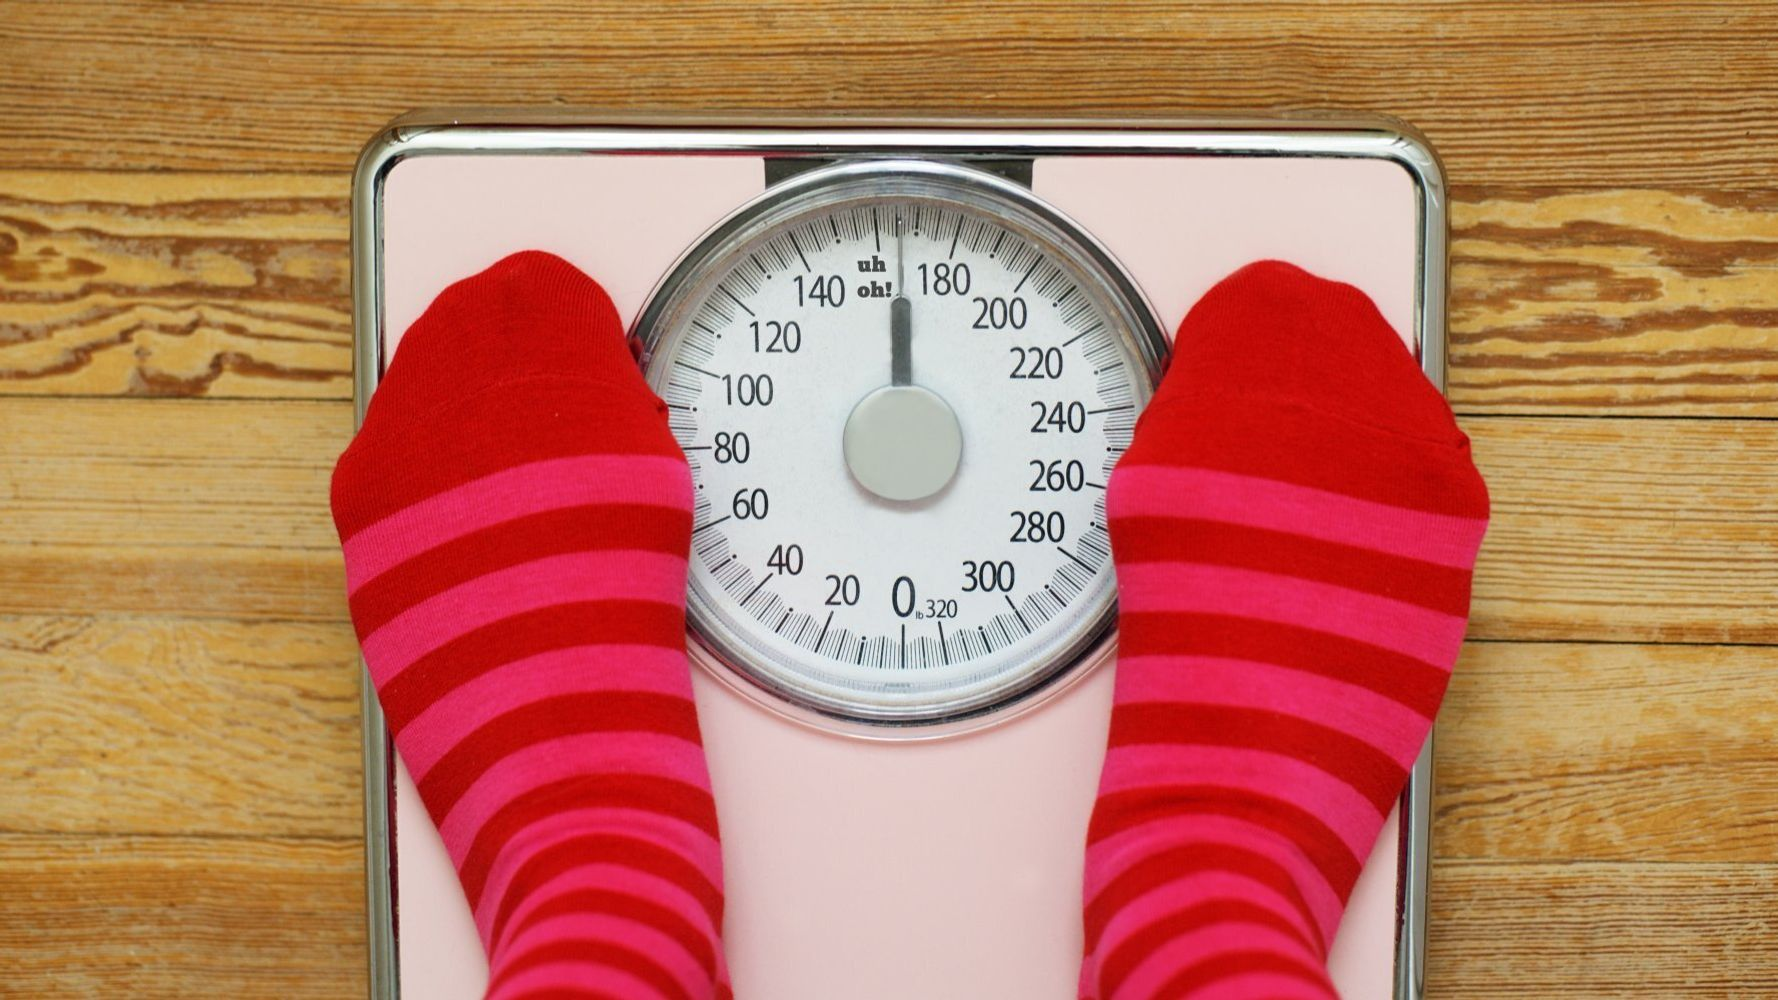 Five Reasons Why Diets Don't Work